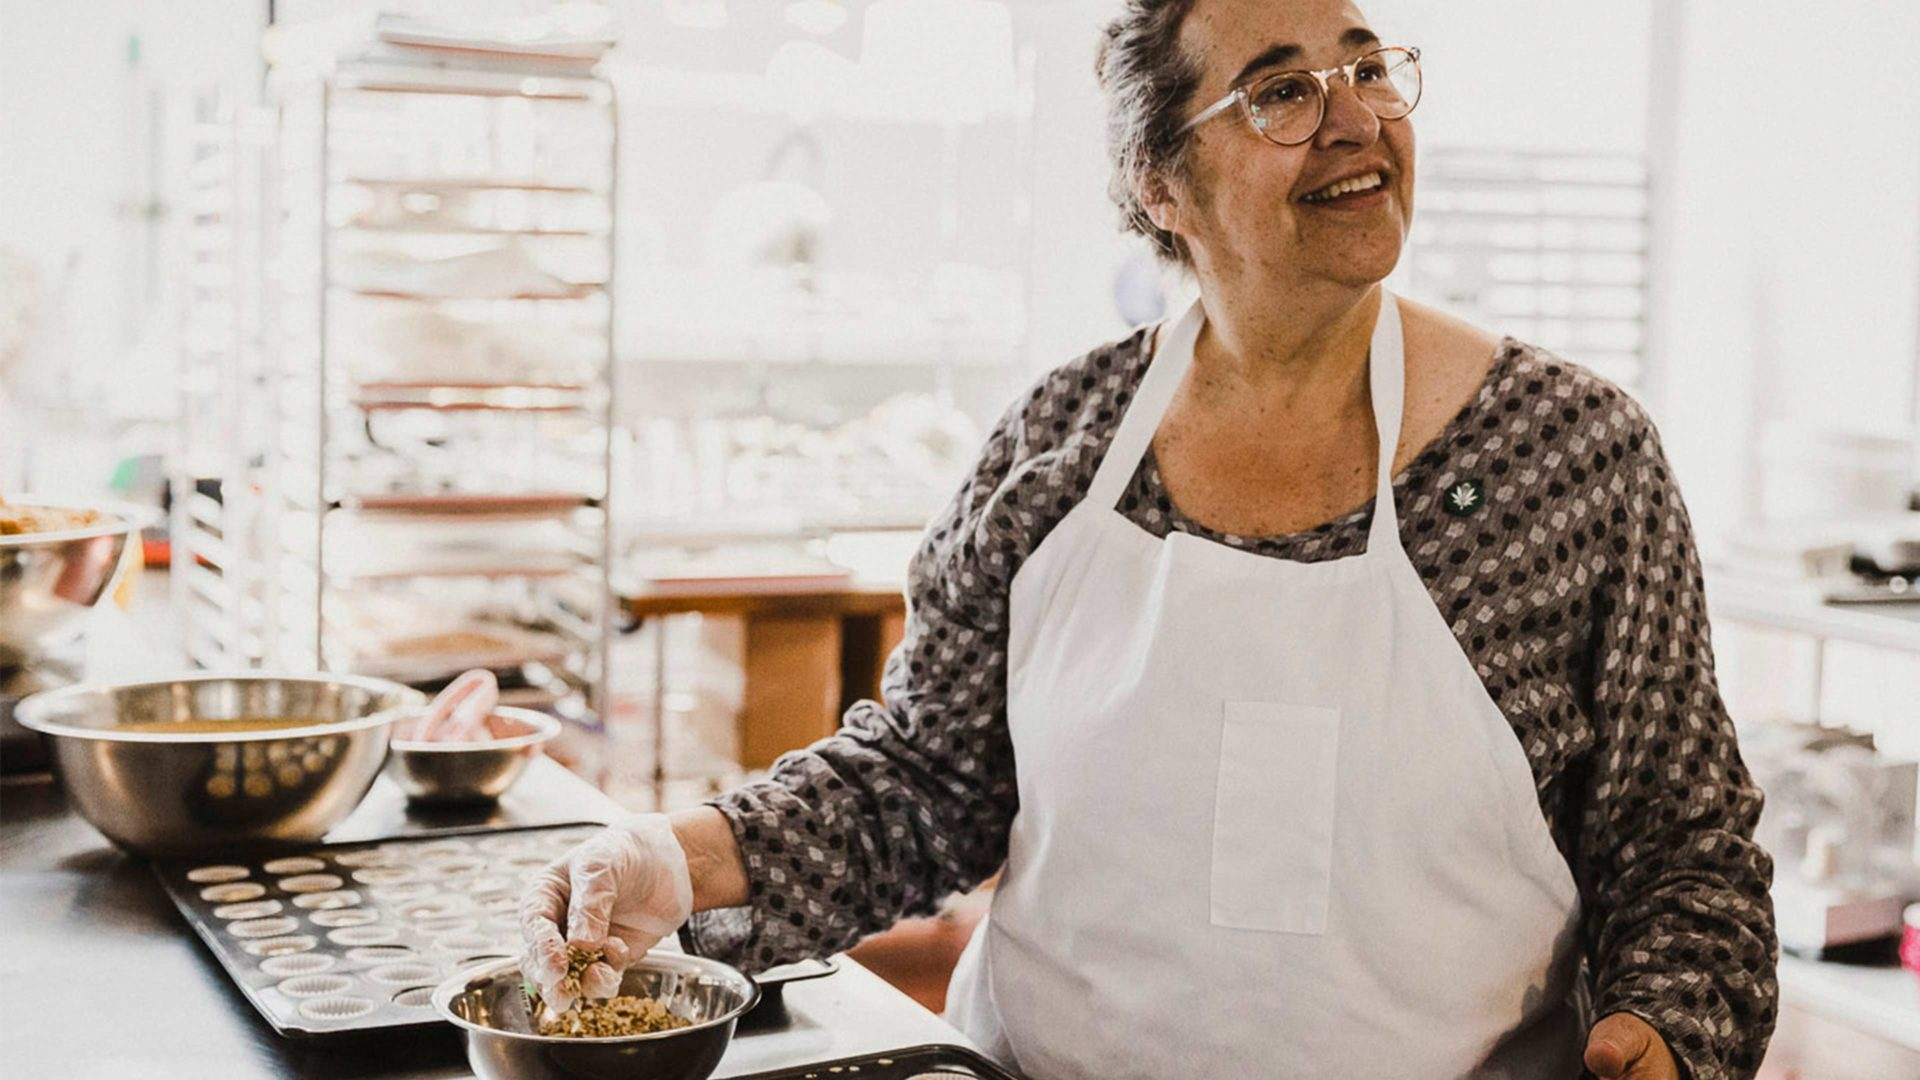 laurie wolf cooking edibles in a kitchen